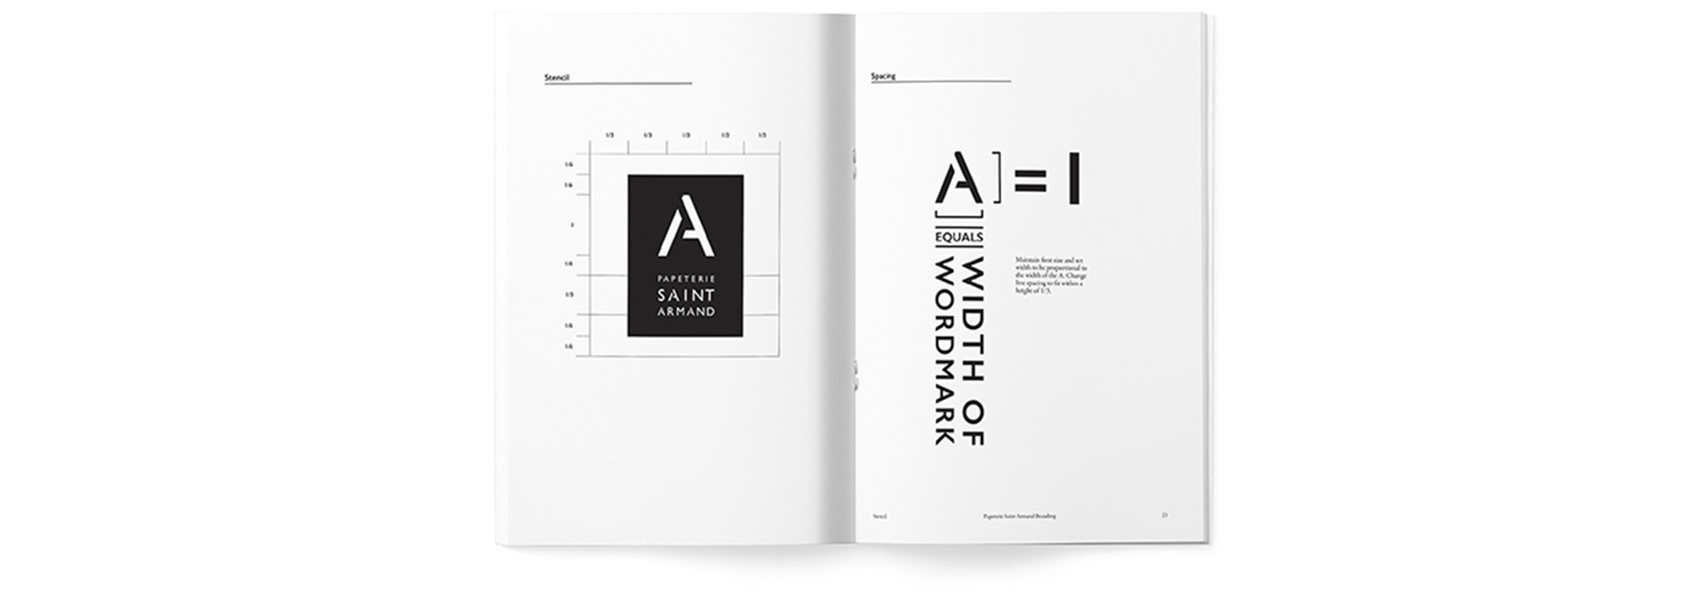 Image of Papeterie Saint Armand Branding